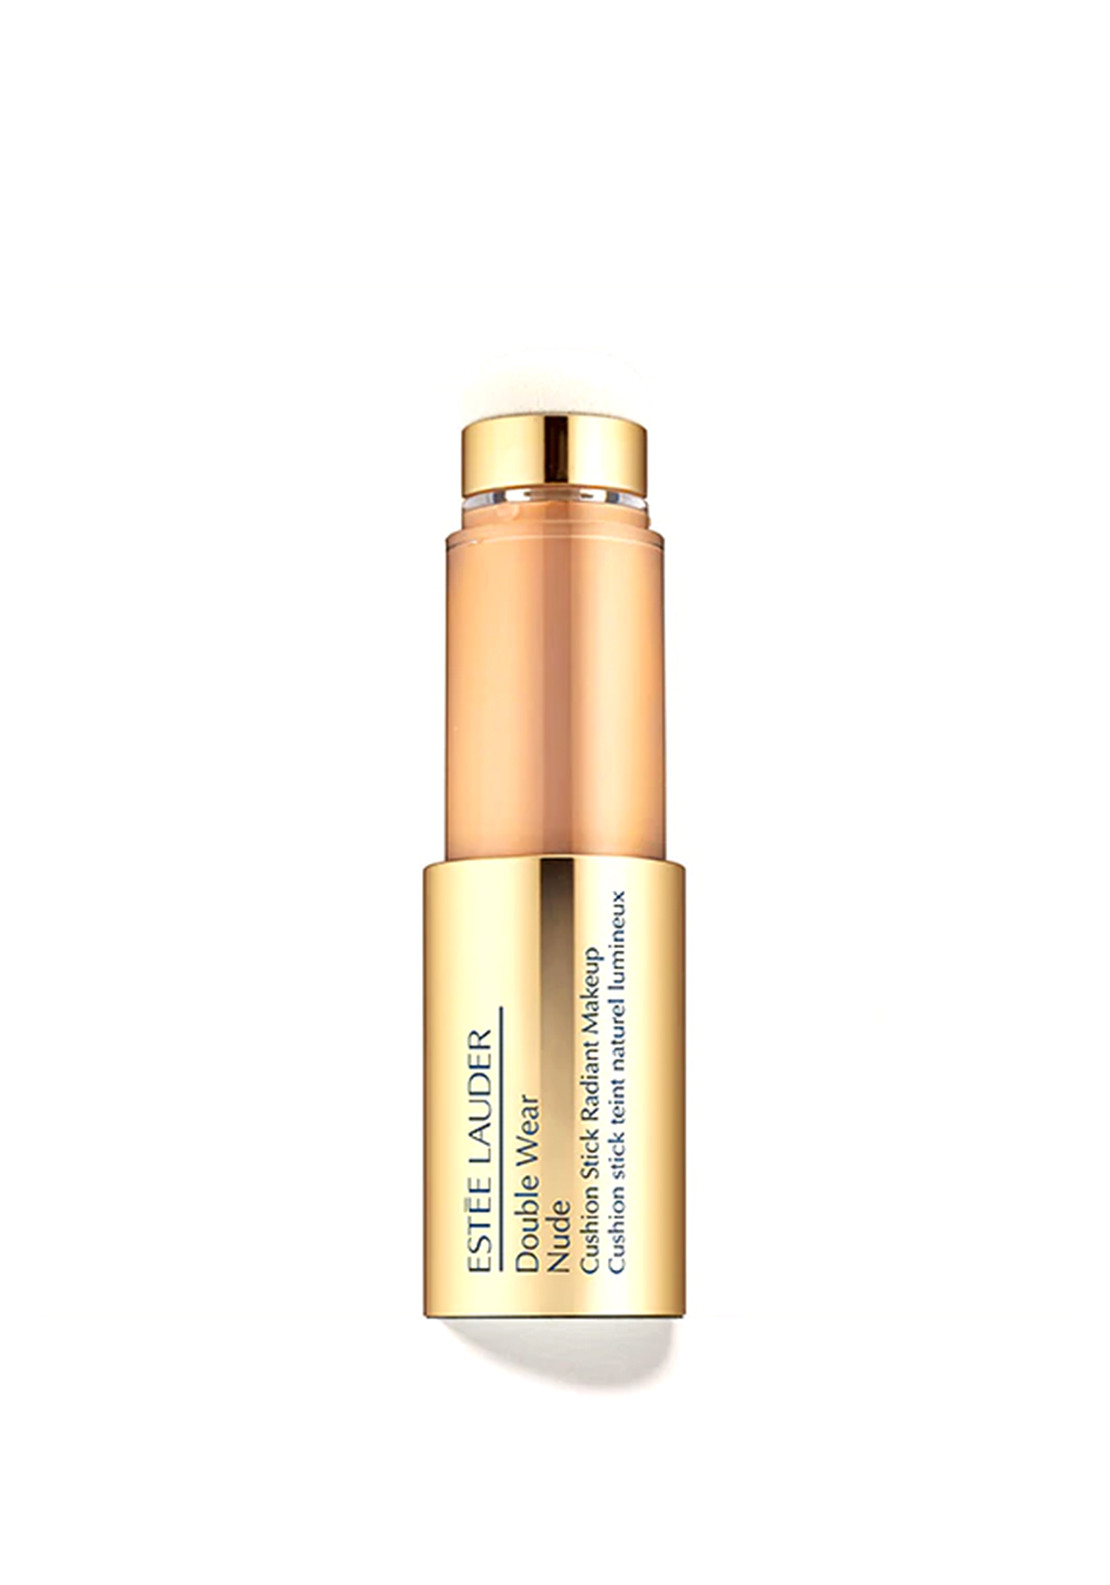 Estee Lauder Double Wear Nude Cushion Stick, Warm Vanilla